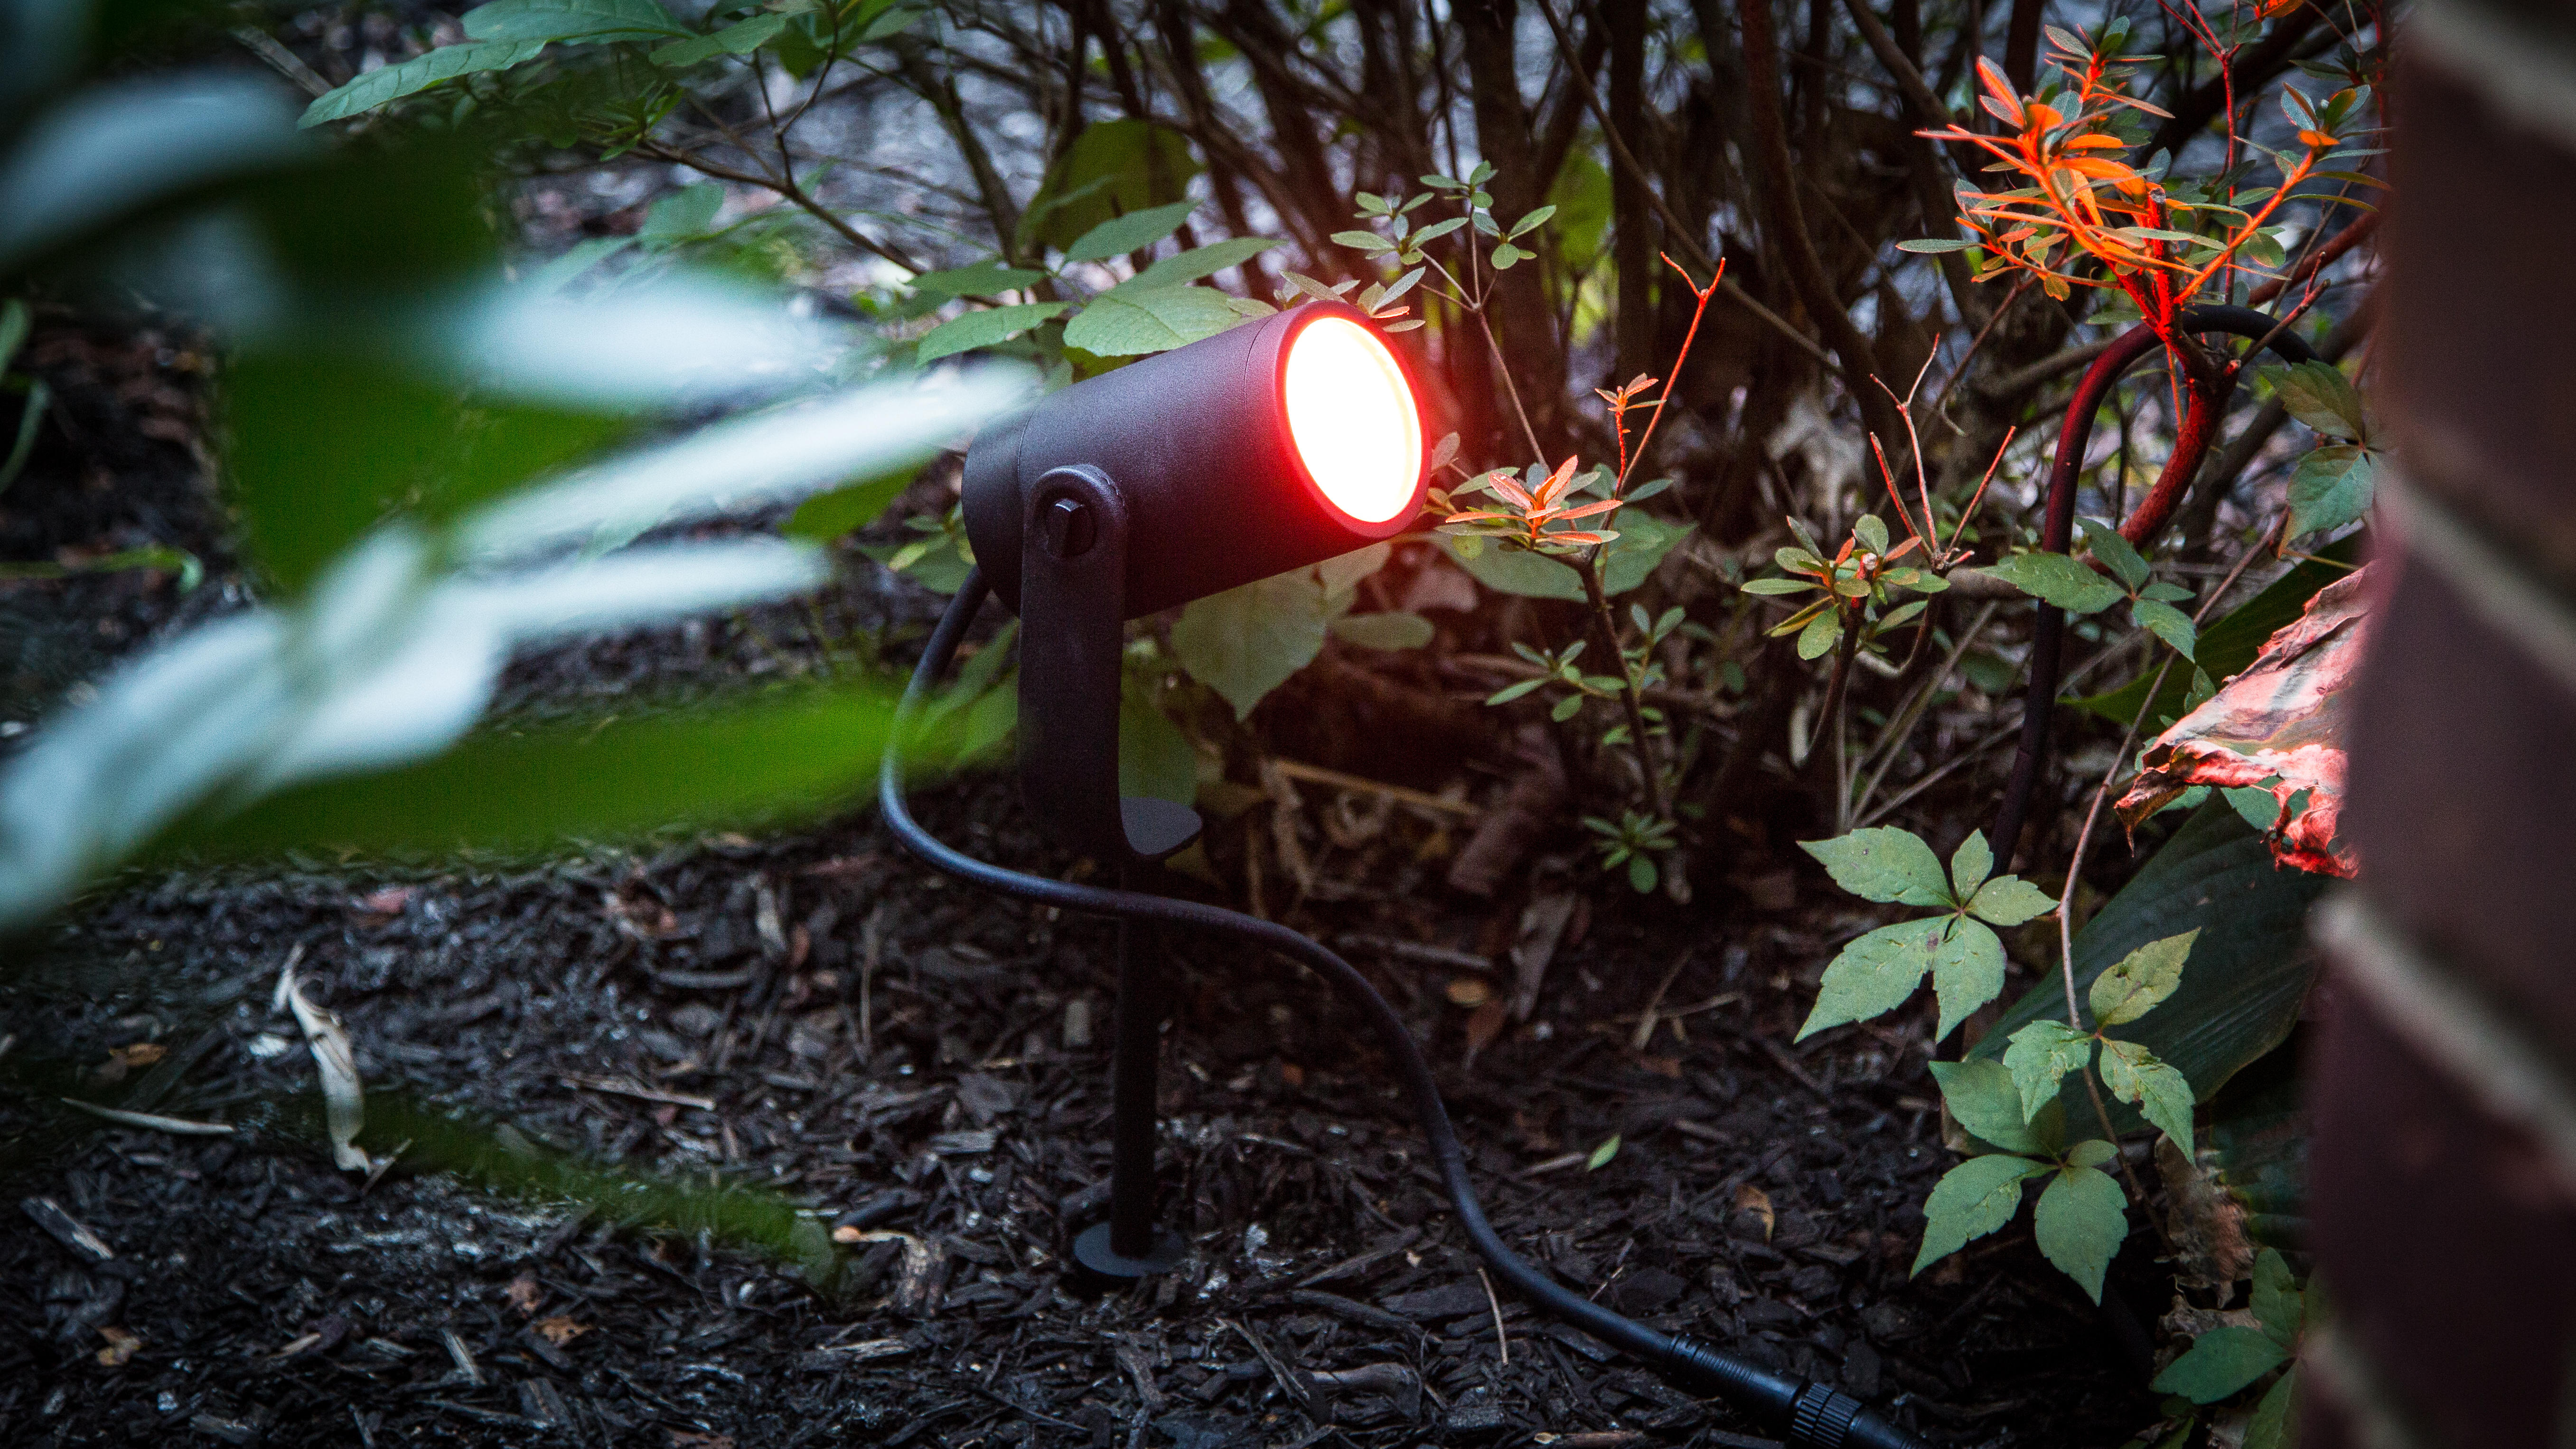 philips-hue-outdoor-lily-spot